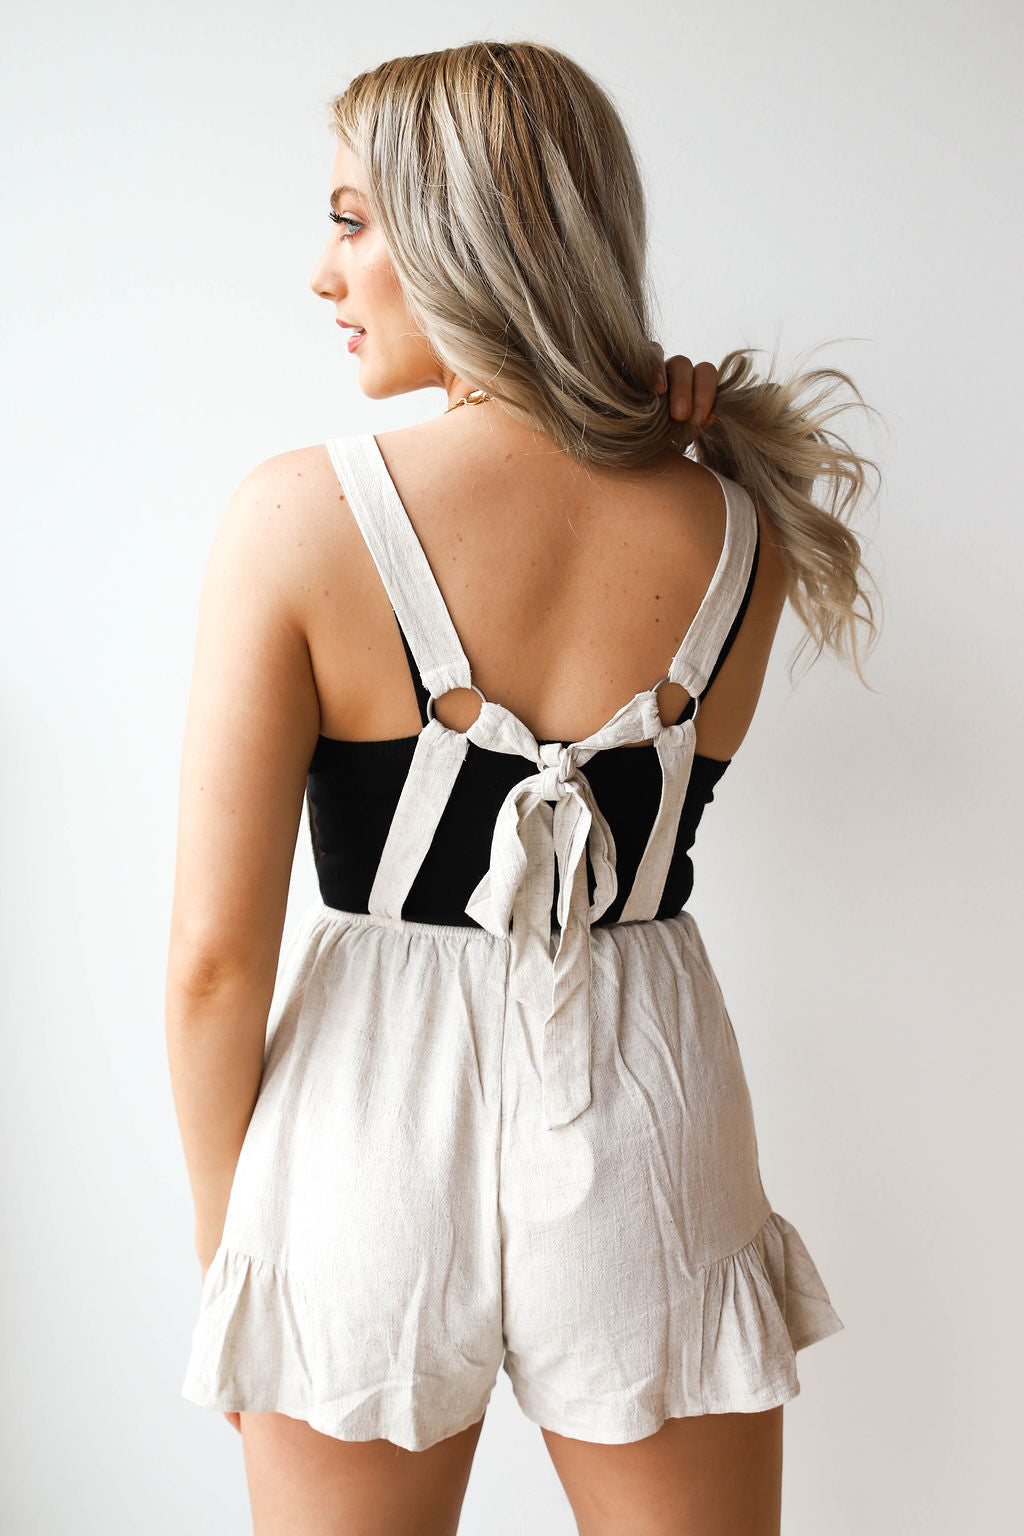 [shop name], the best day romper